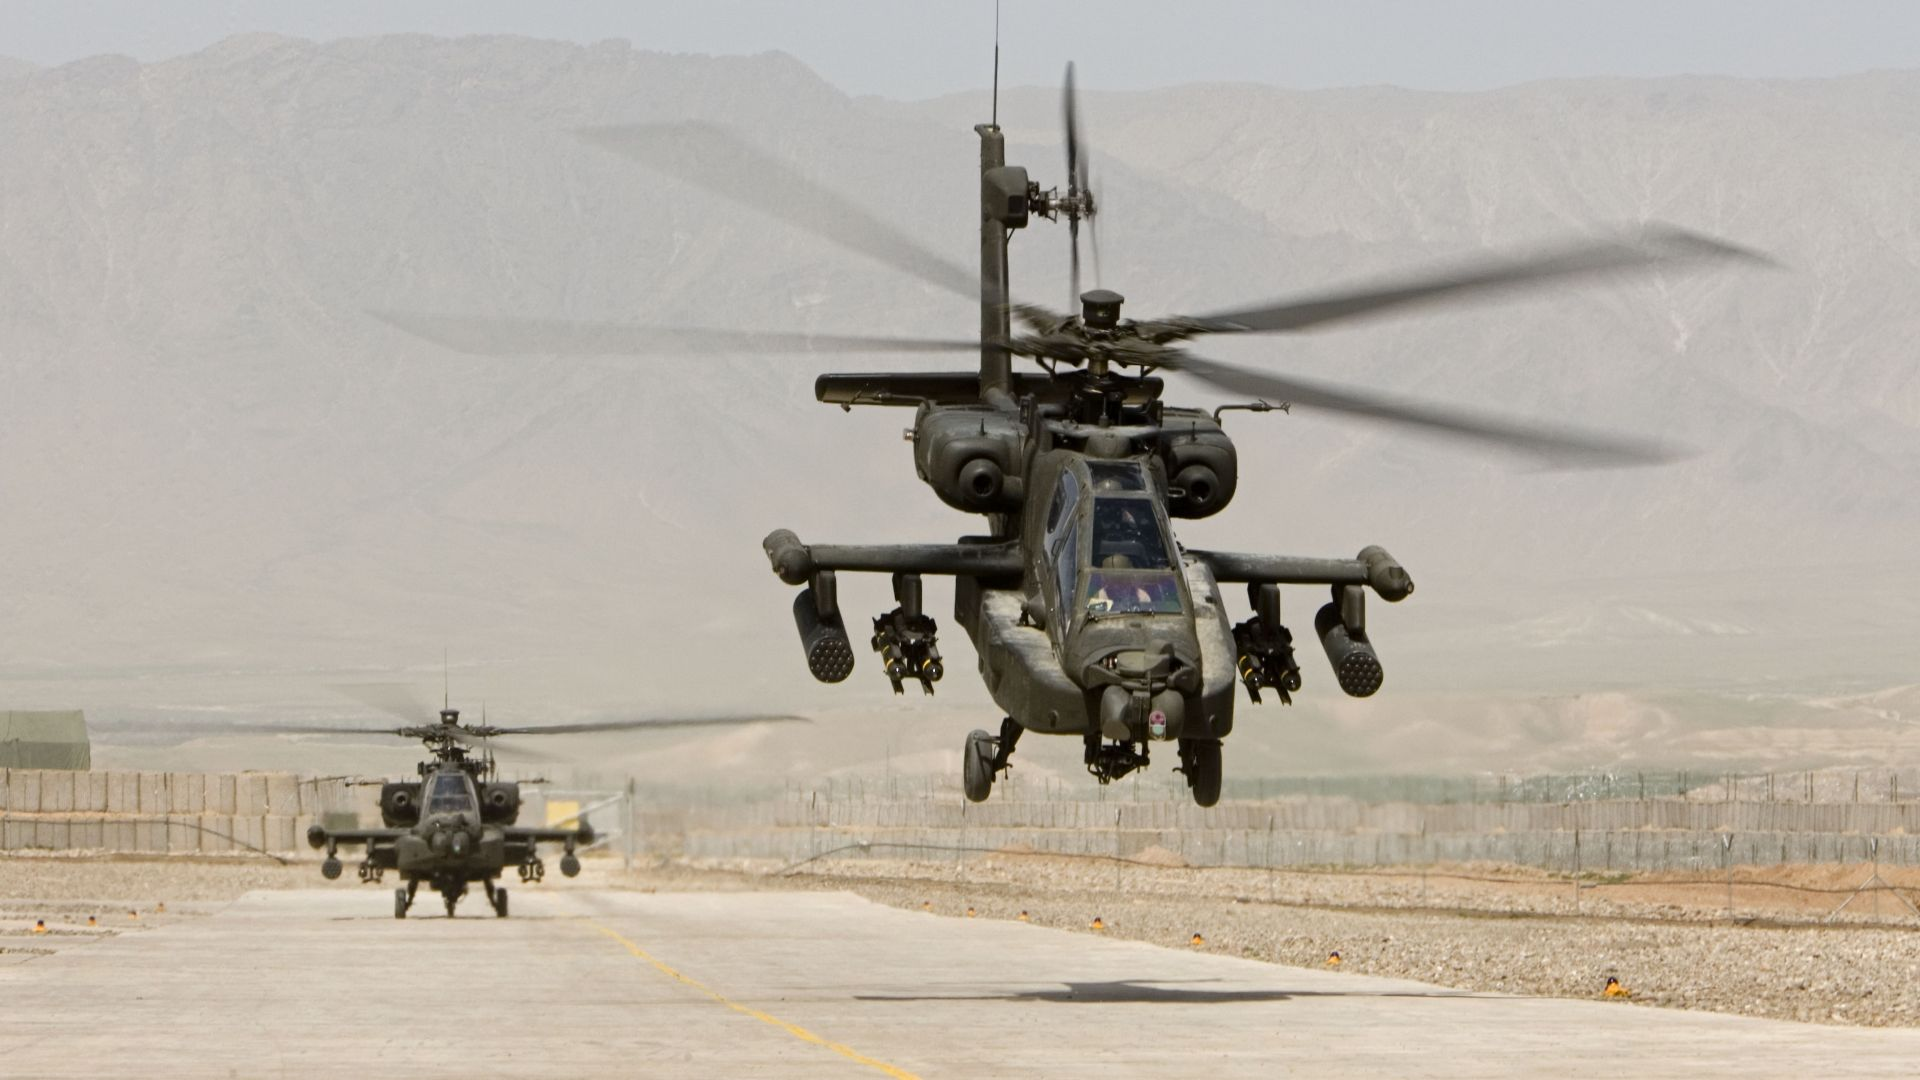 AH-64, Apache, attack helicopter, US Army, U.S. Air Force (horizontal)